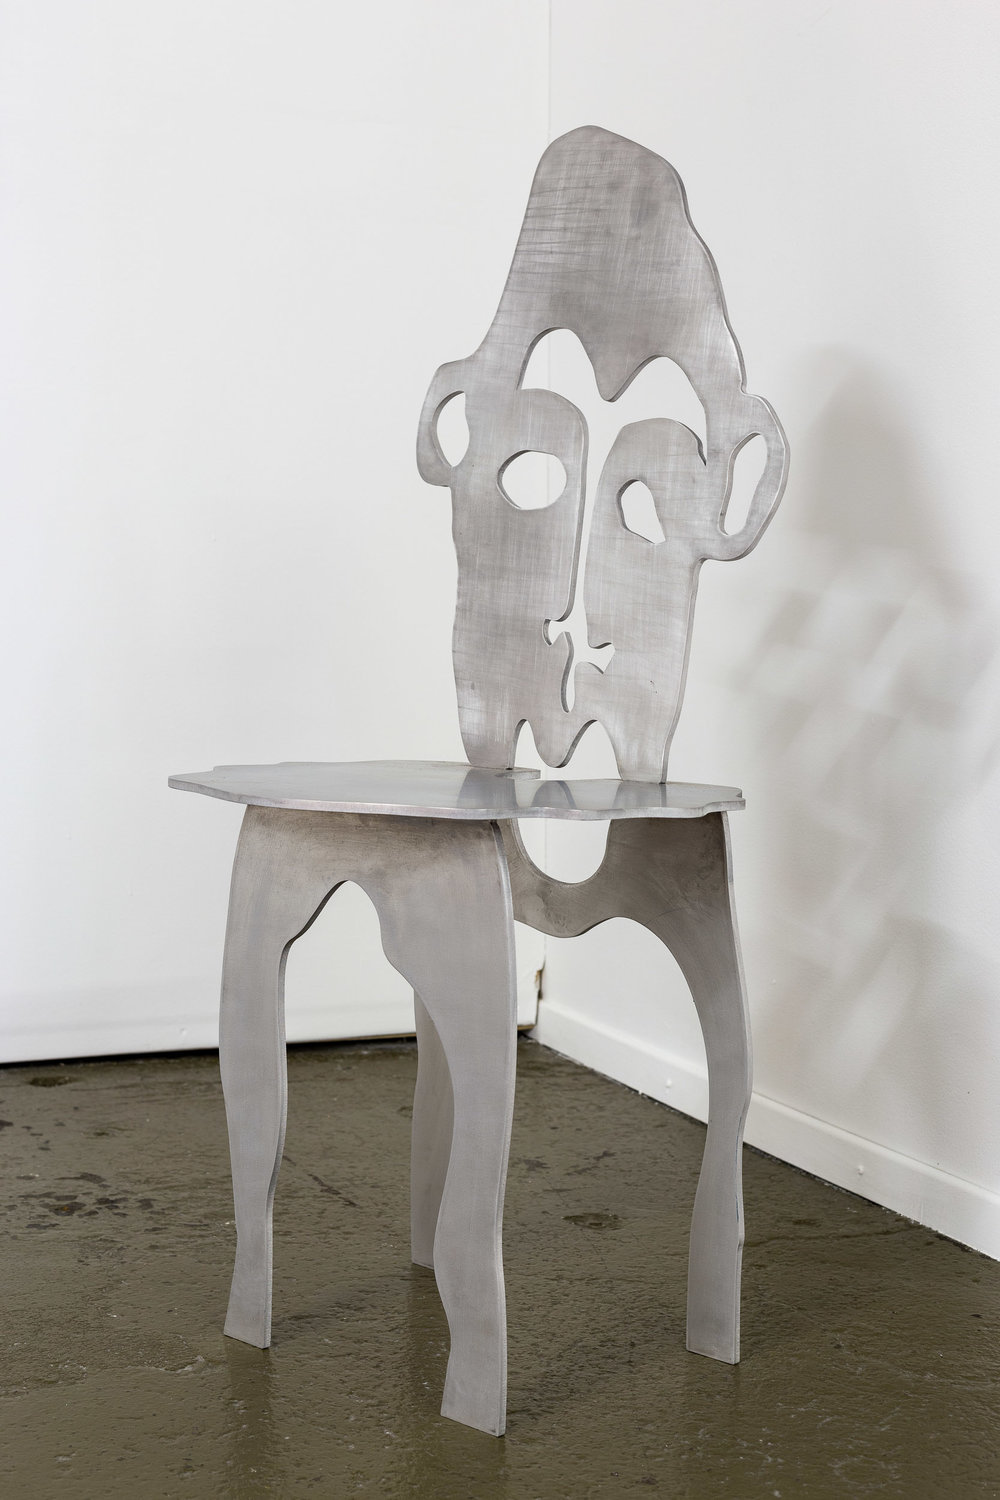 Xénia Lucie Laffely,  Face chair,  2017, steel, 51 x 109 x 47 cm  Photo: Kilian Bannwart